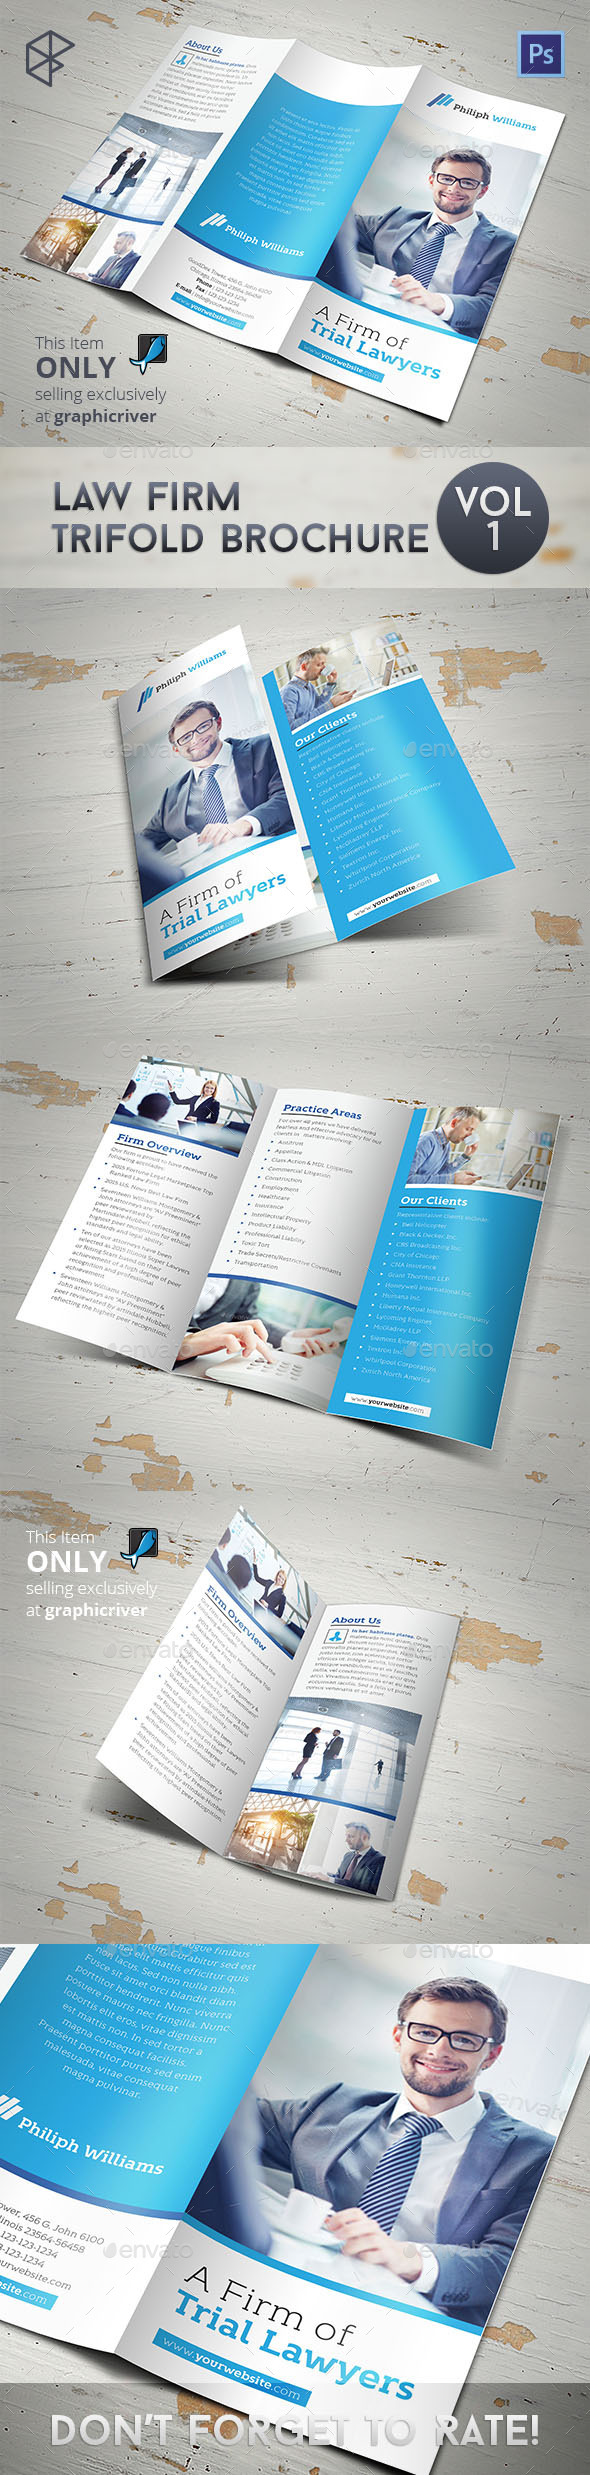 Law Firm Trifold Brochure - Corporate Brochures